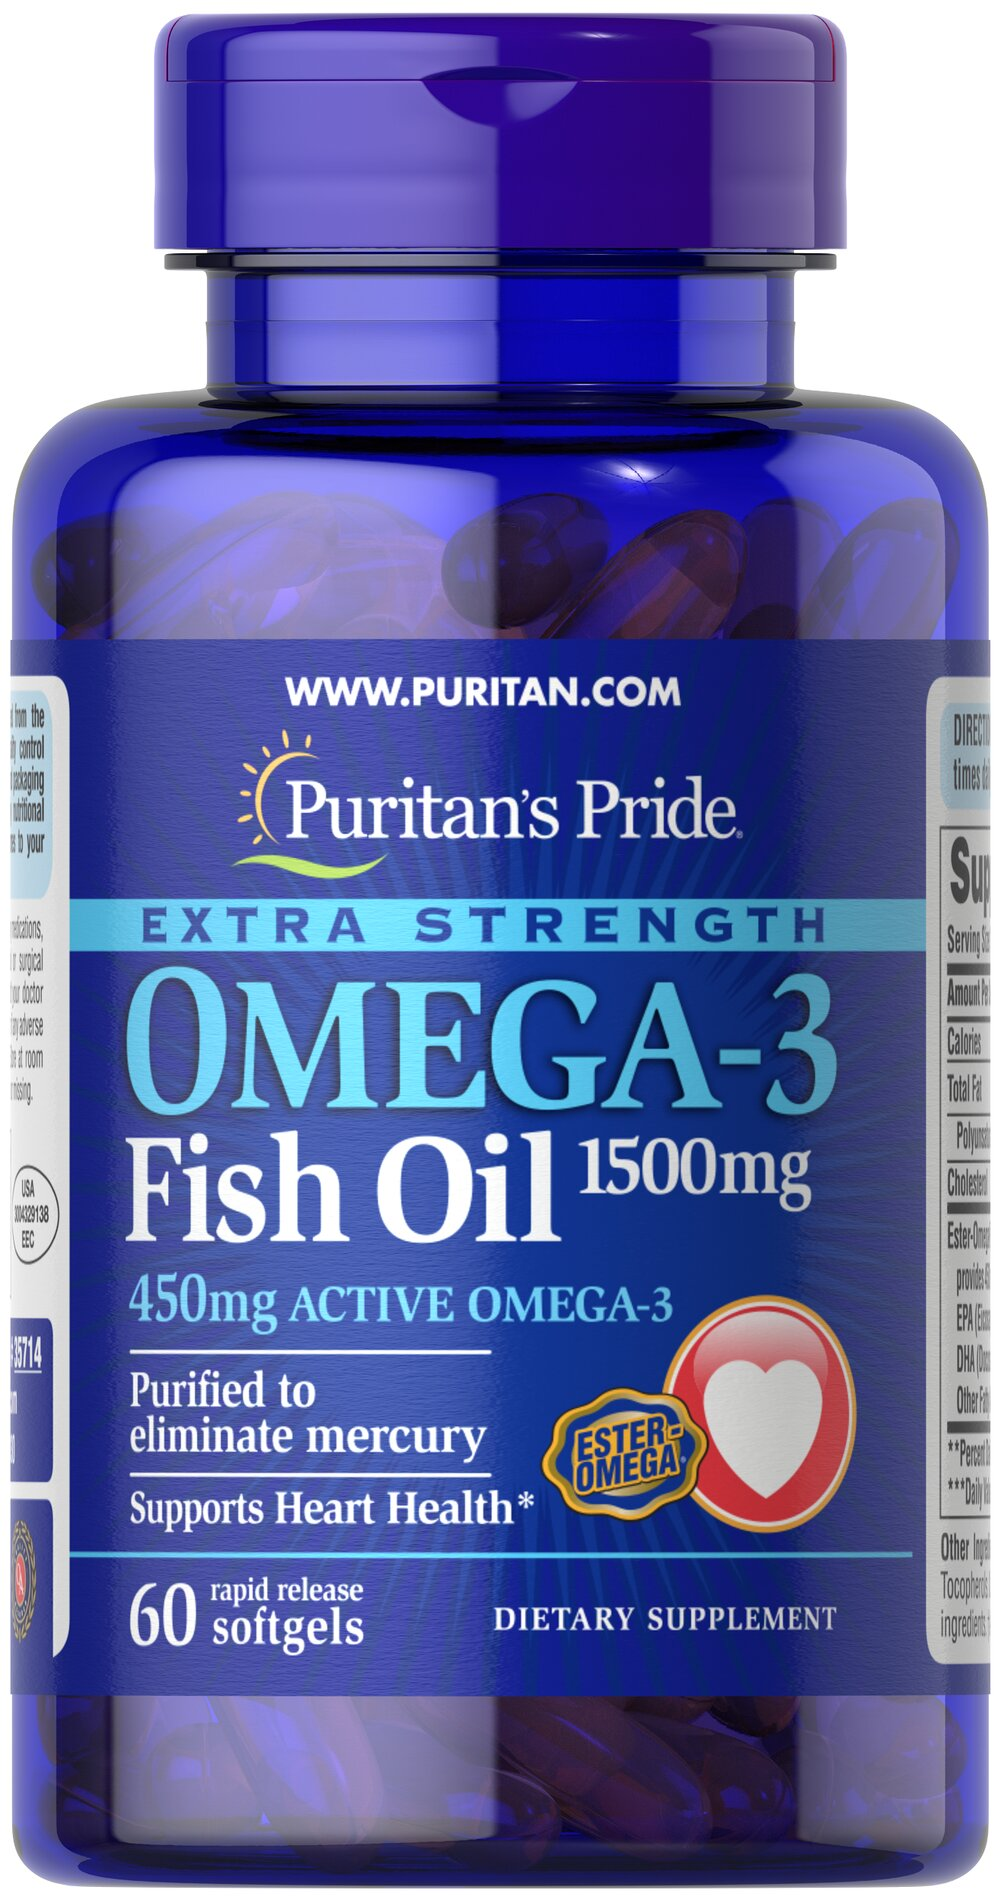 Extra Strength Omega-3 Fish Oil 1500 mg (450 mg Active Omega-3) <p><strong>Purified to Eliminate Mercury</strong></p><p>Super Potency 1500 mg  in one softgel!</p><p>Contains 450 mg of active Omega-3 per softgel.</p><p>Features fish oil in rapid-release softgels with enhanced potency and superior absorption.**</p> 60 Softgels 1500 mg $11.19